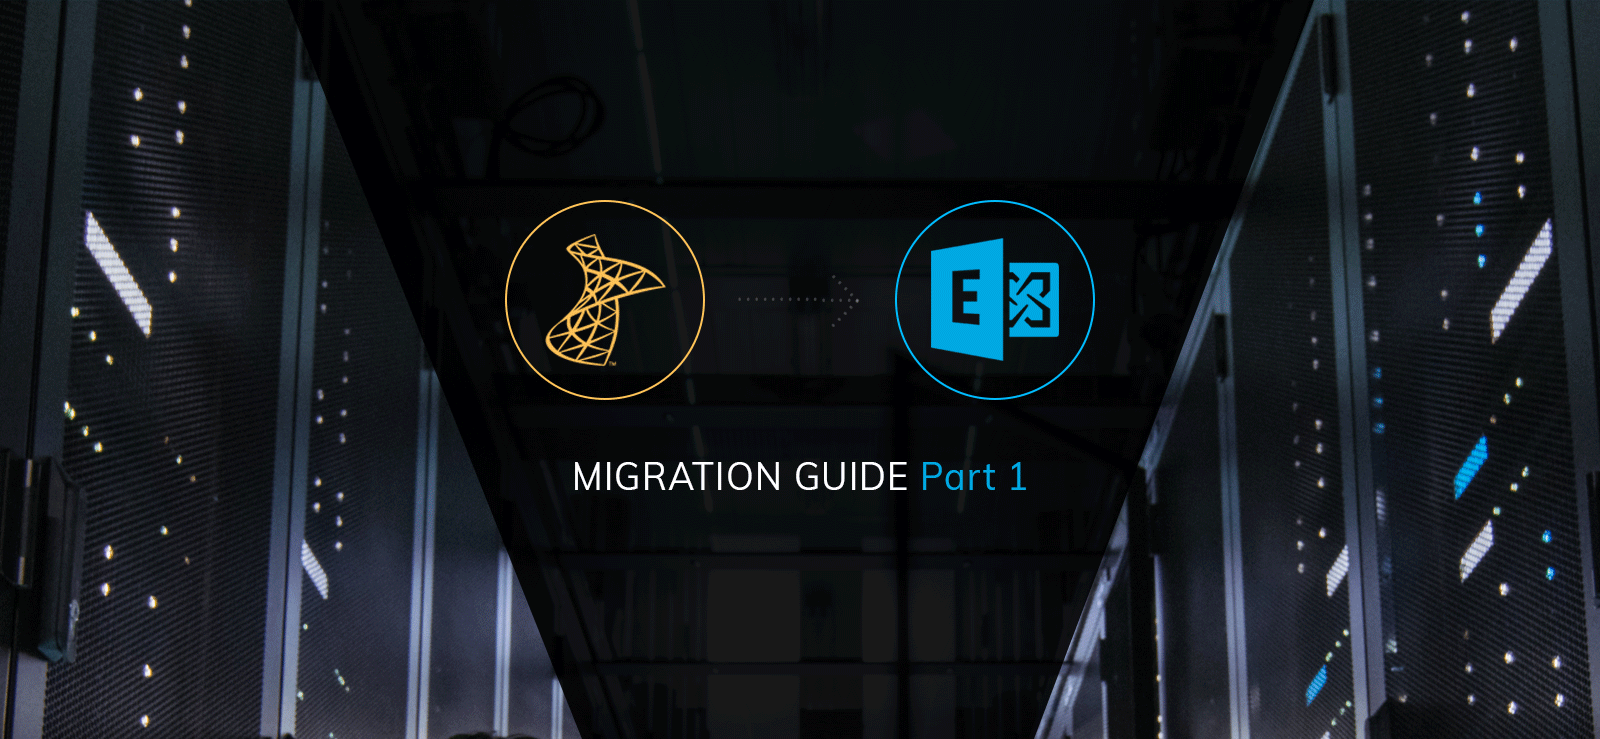 Step-by-step guide for migrating Exchange Server 2010 to 2016 – Part 1